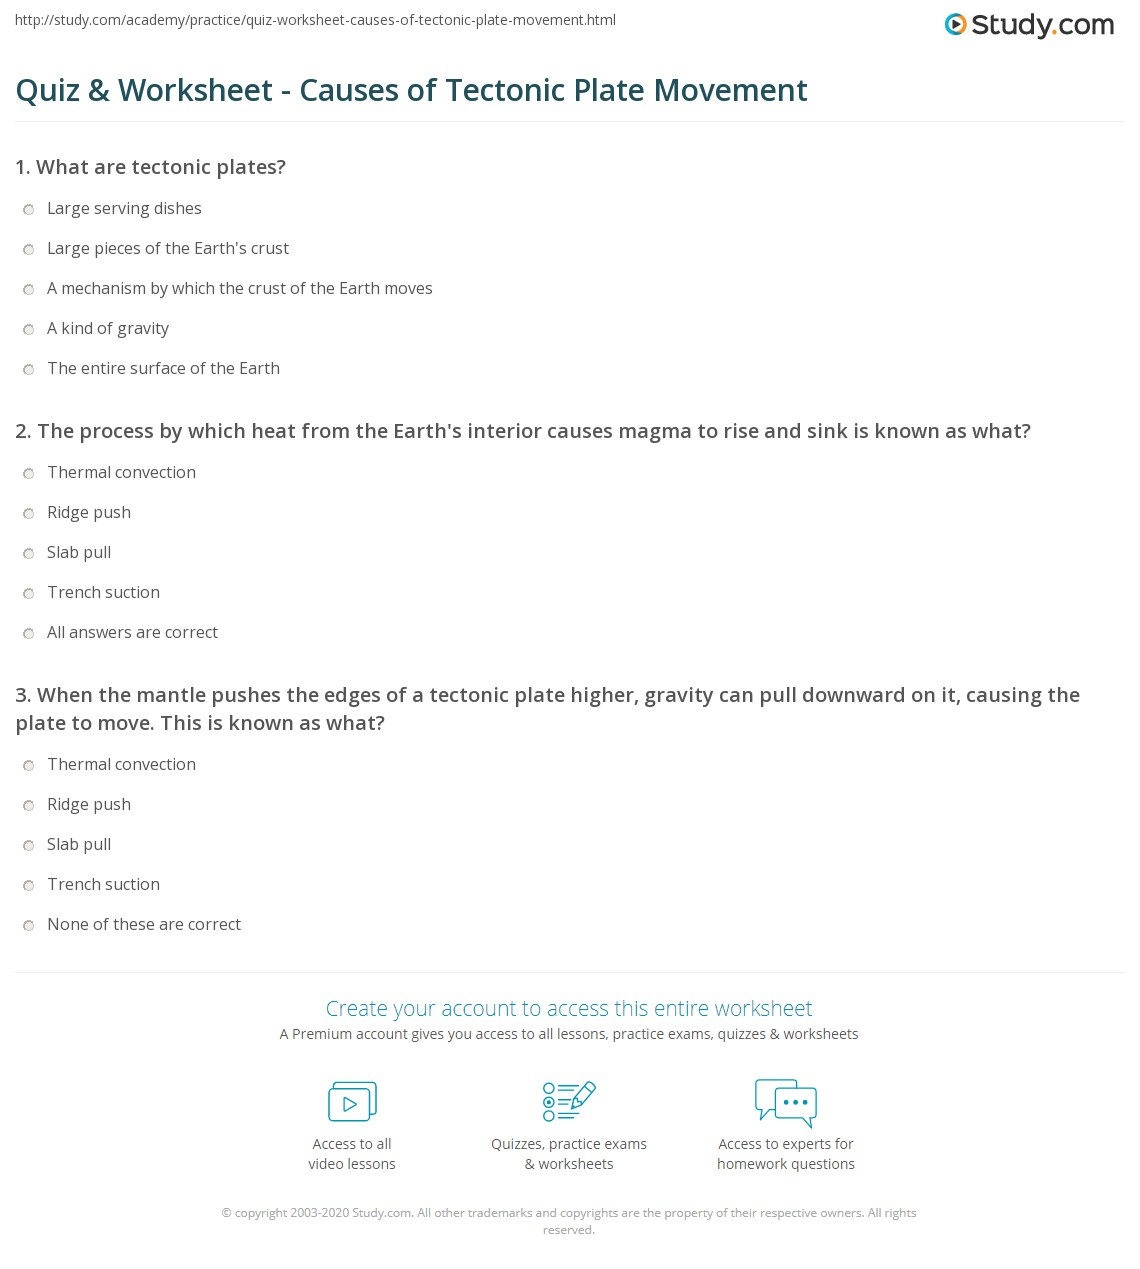 Quiz Worksheet Causes Of Tectonic Plate Movement